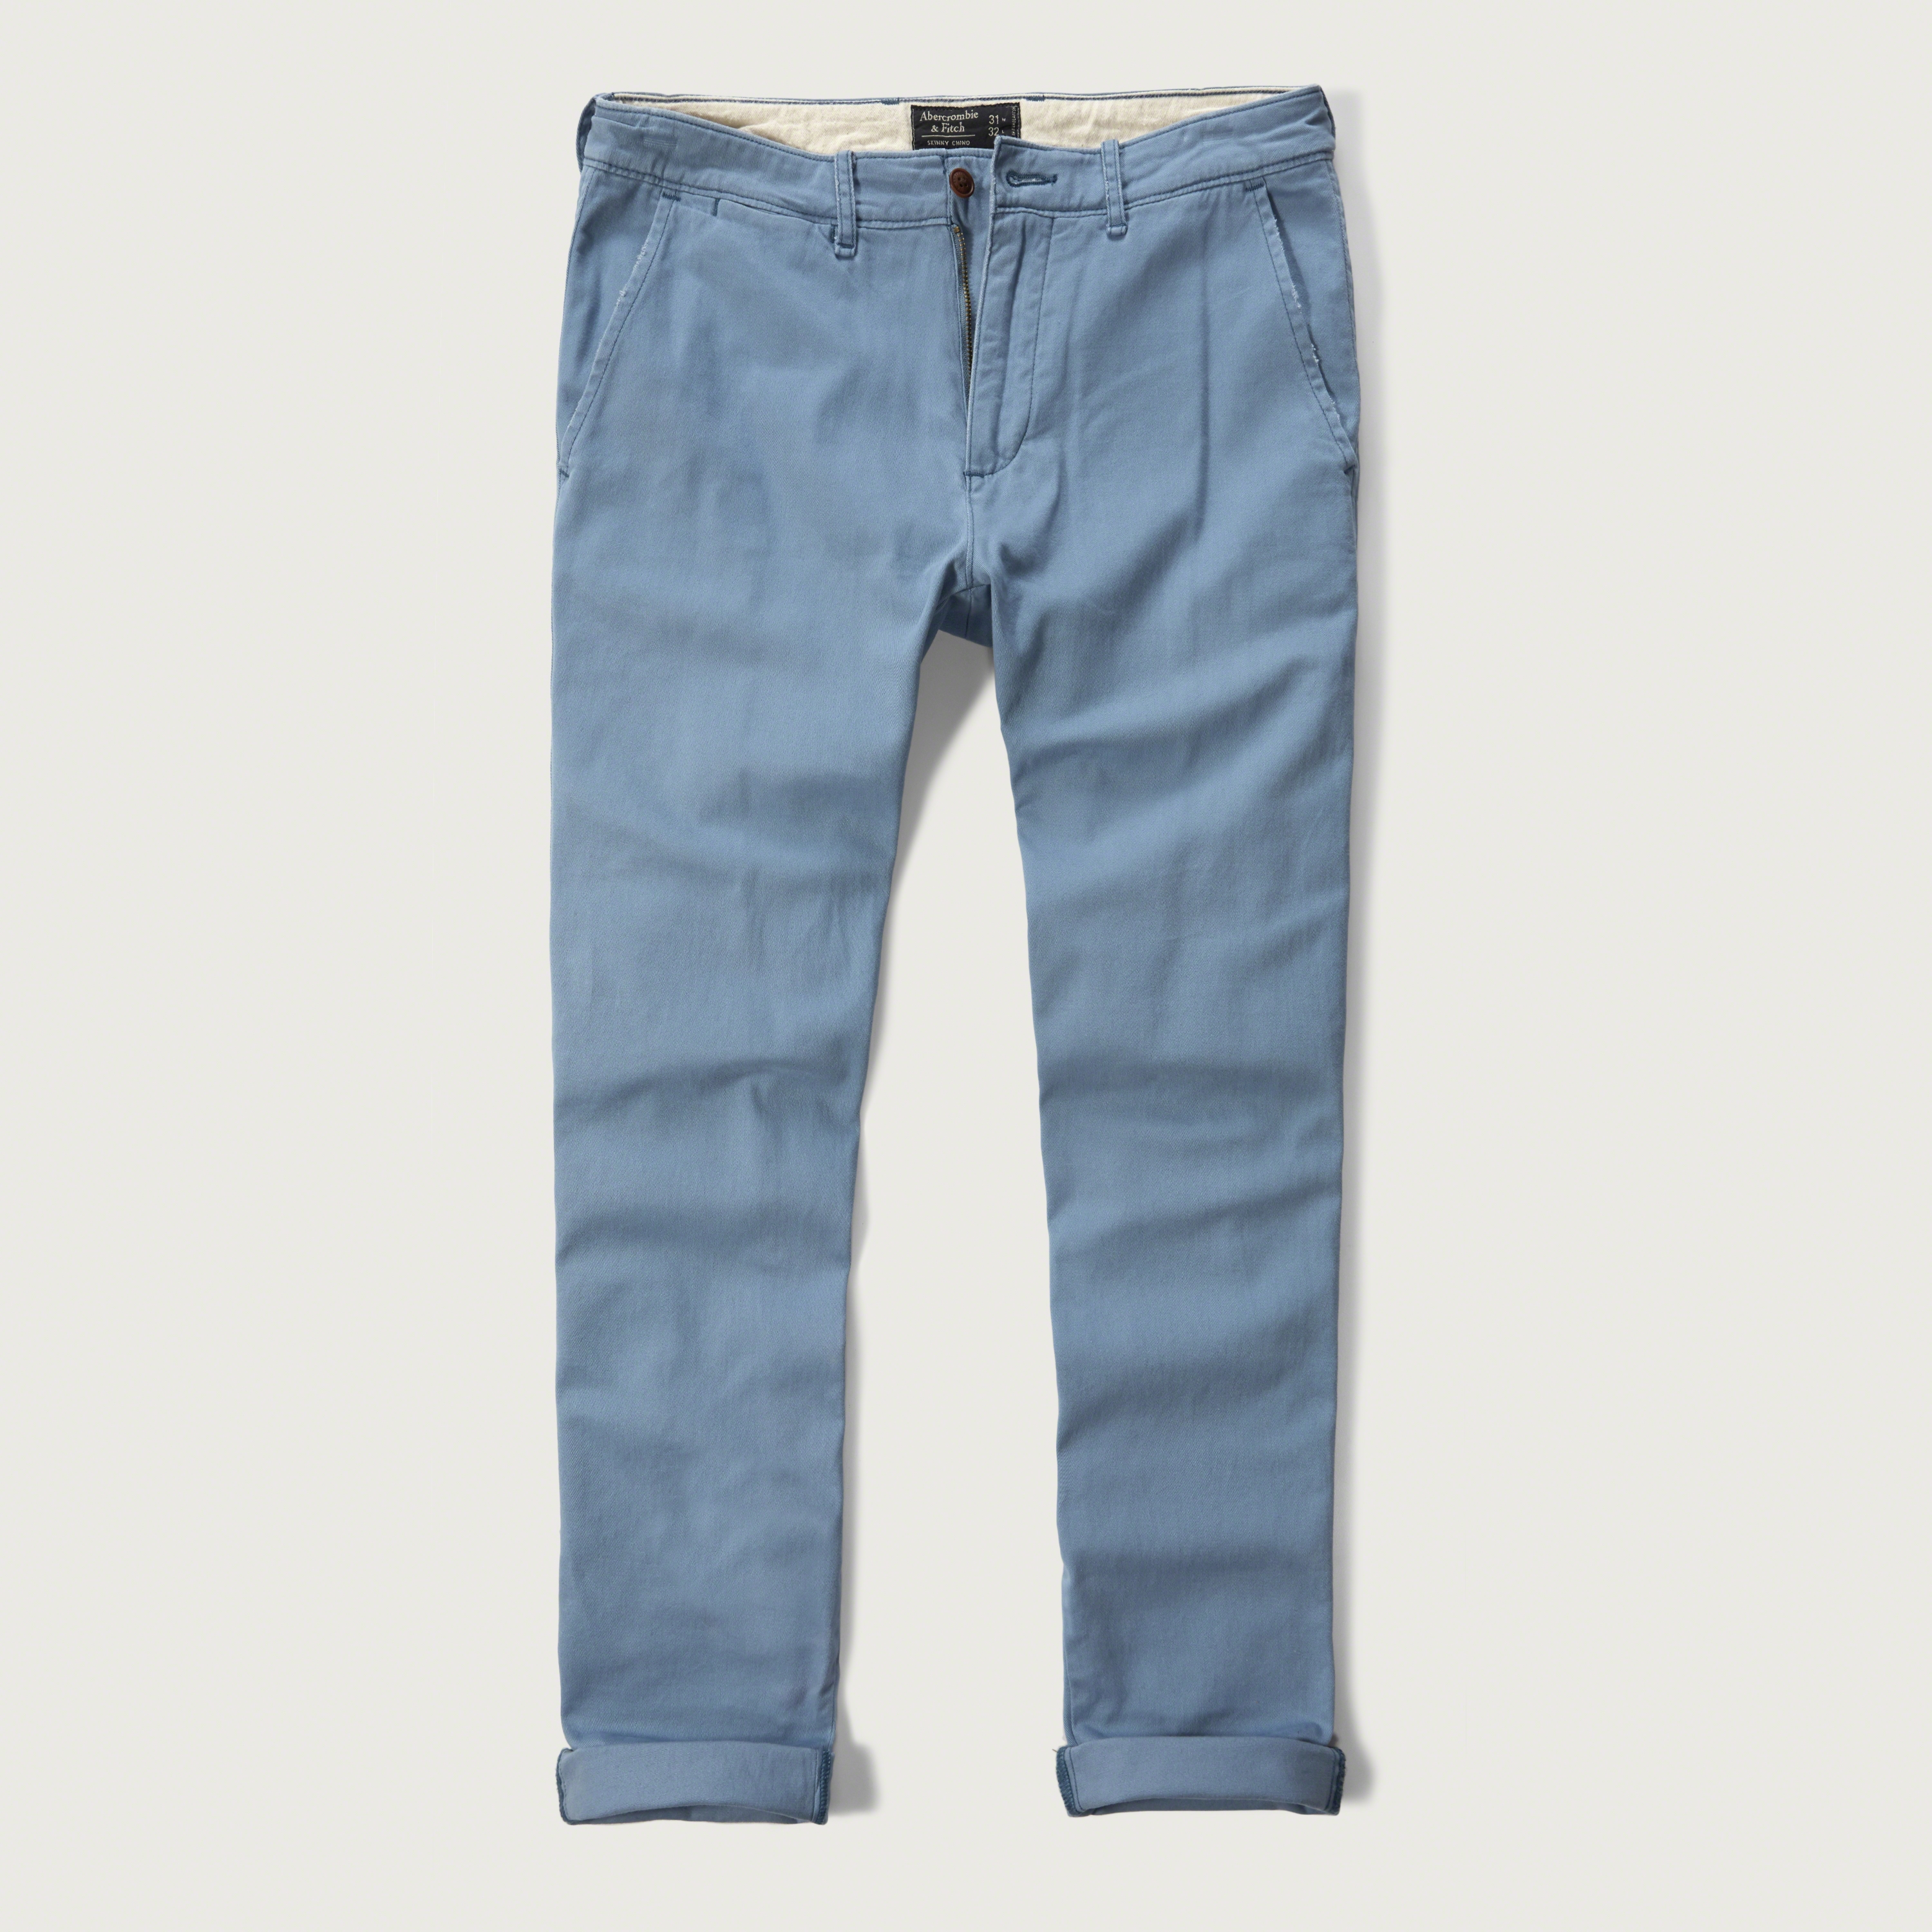 Men. New Arrivals +Plus Coming Soon Gambino Chino Pants - Blue. SHARE. $USD. PRODUCT DETAILS. Available in Black, Olive, Khaki, And Blue; Zip Fly With Button Closure; Slant Pockets; Back Welt Button Pocket; 98% Cotton 2% Spandex; SHIPPING INFORMATION.